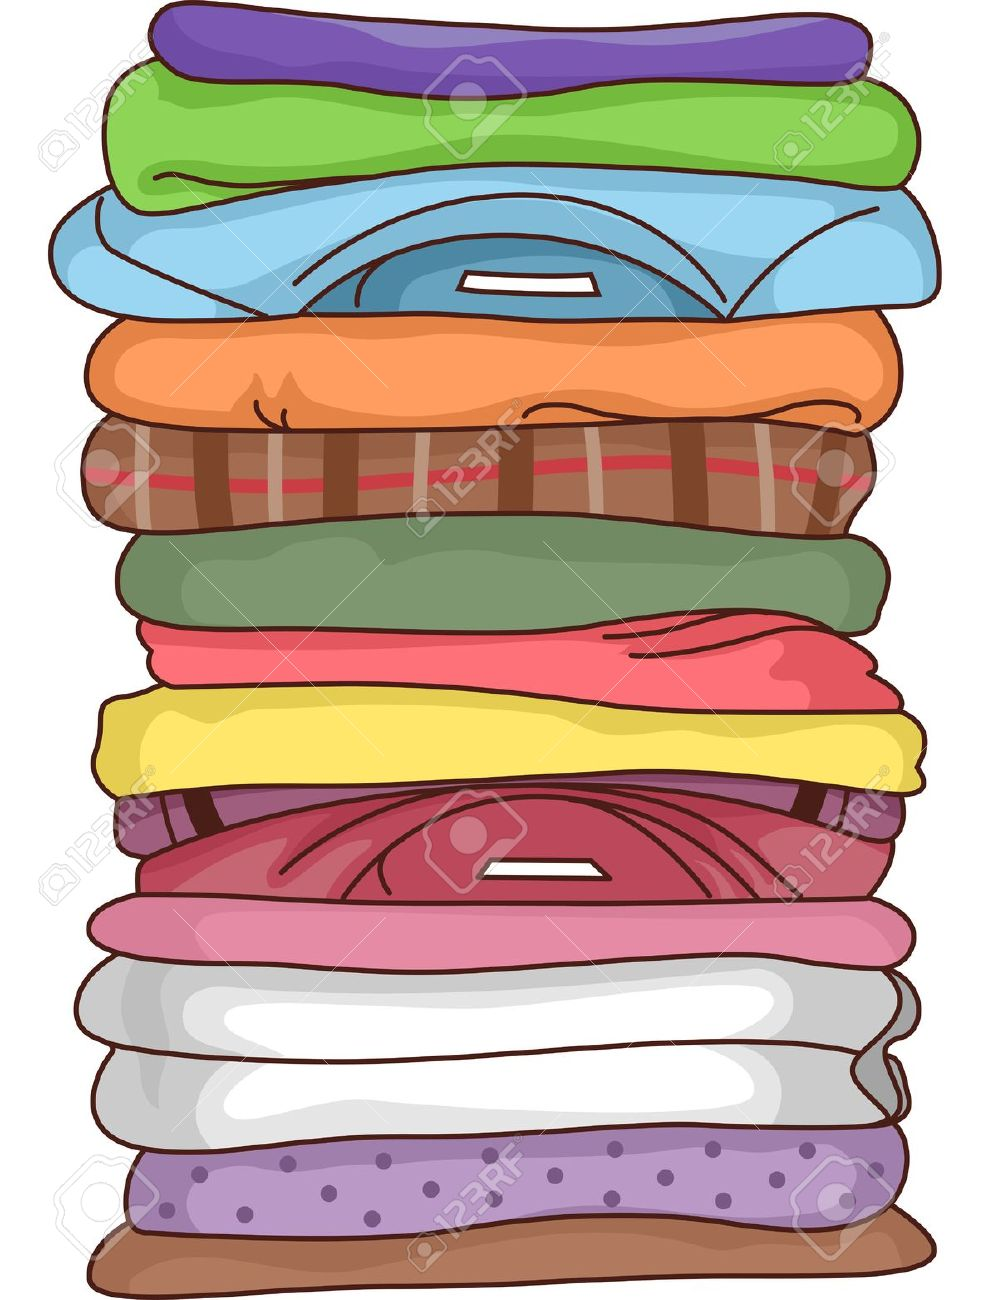 Clothing clothes clipart 3 image.